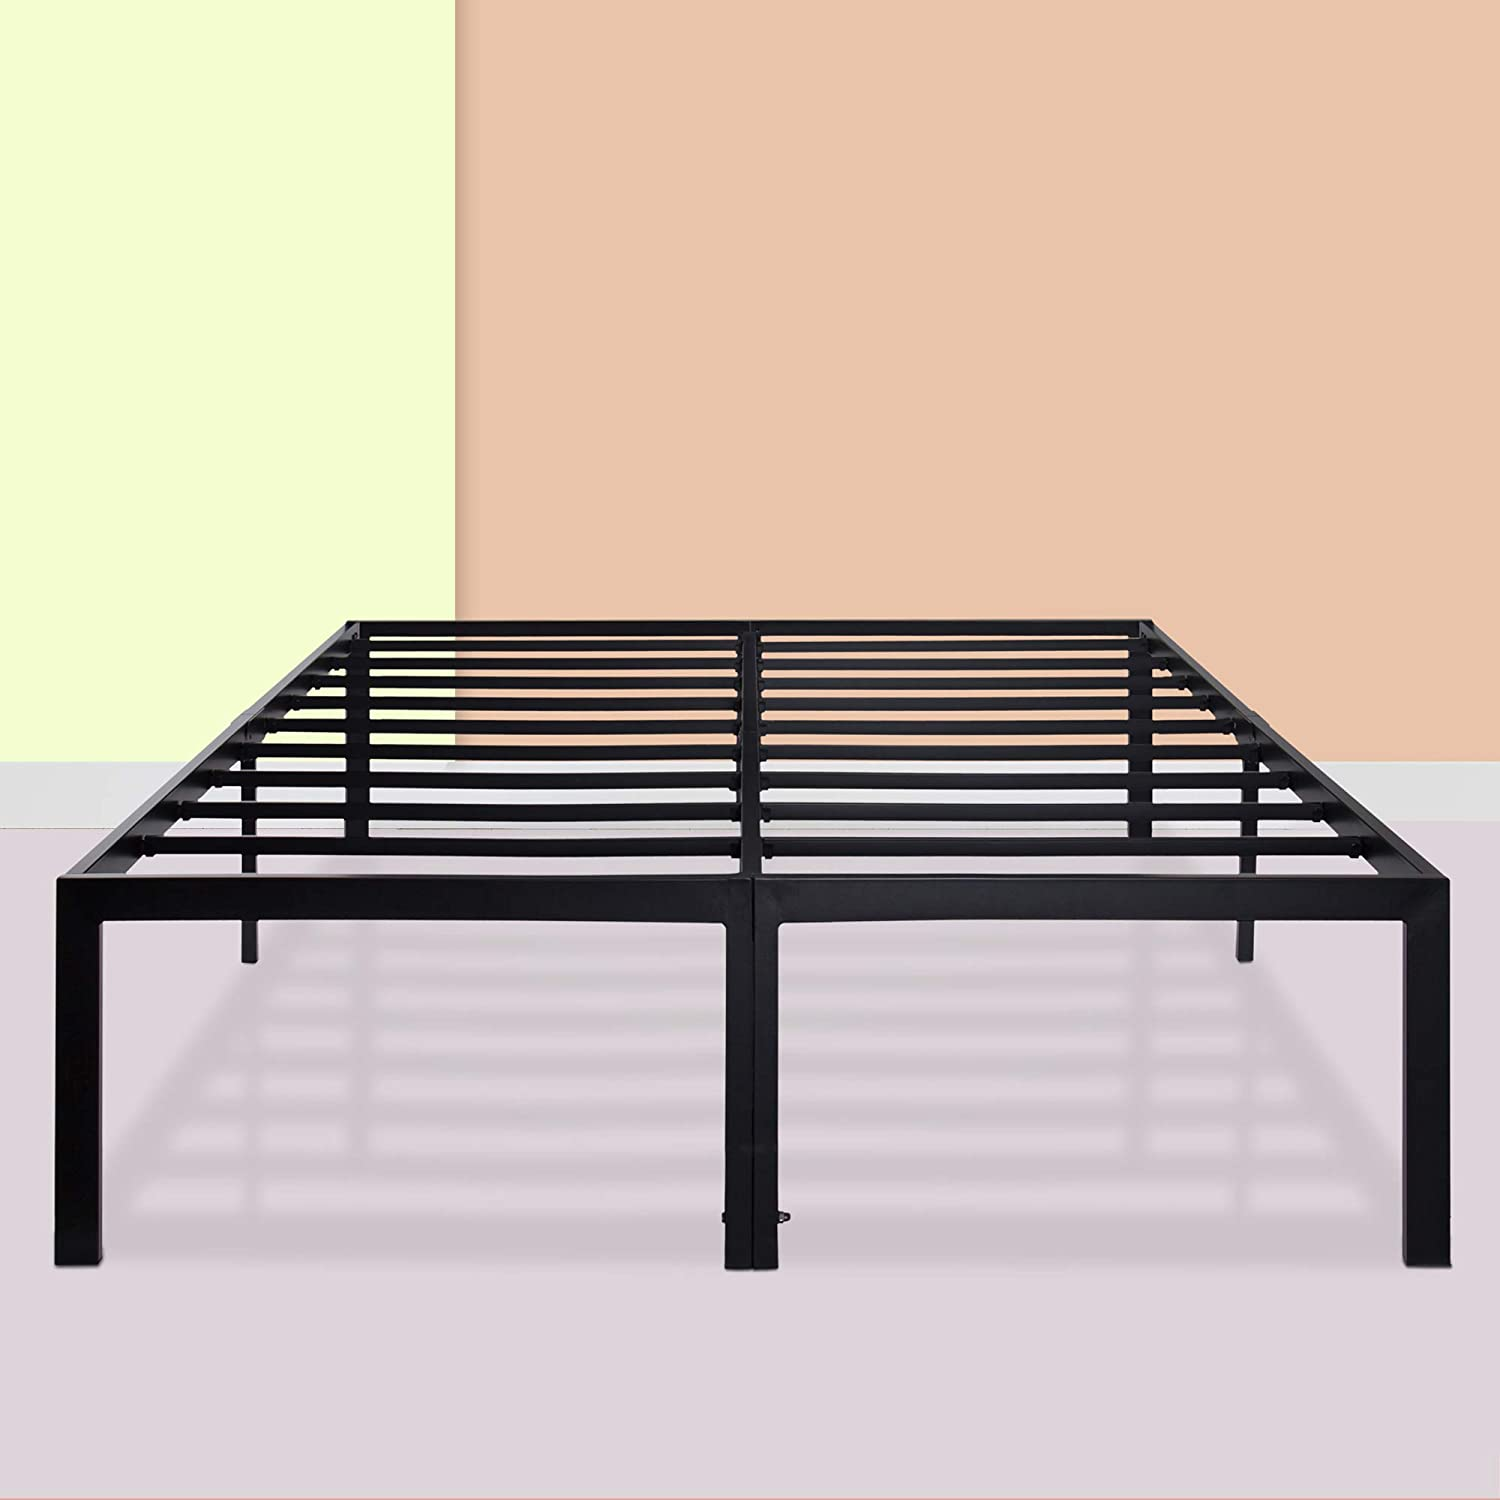 PrimaSleep 18 Ultimate Strength High Profile Heavy Duty Steel Slat Anti-Slip Extra Support Easy Assembly Mattress Foundation Noise Free No Box Spring needed, Black, Full